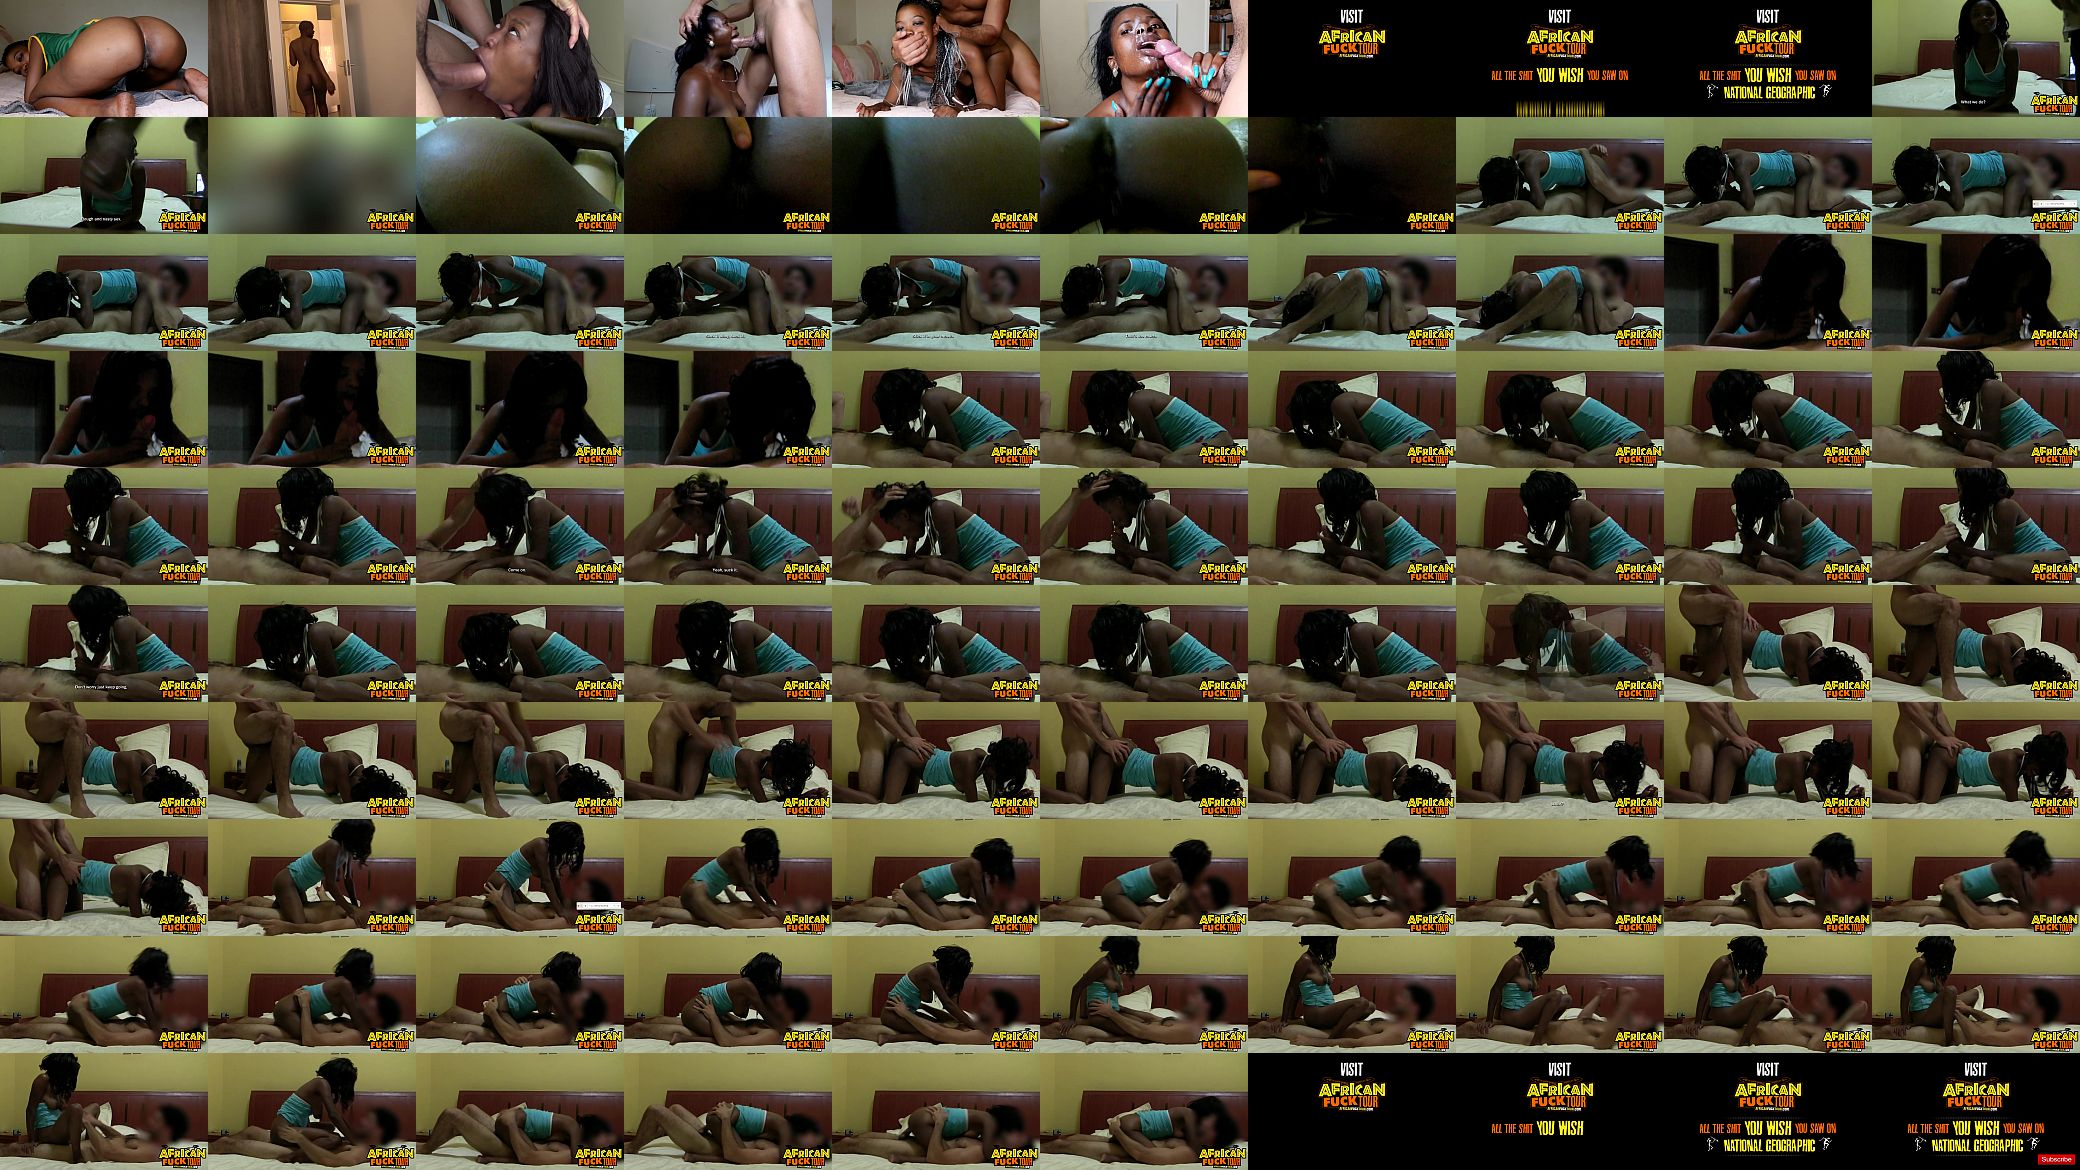 African Xvideos tourist fucks and films cute african teen in hotel